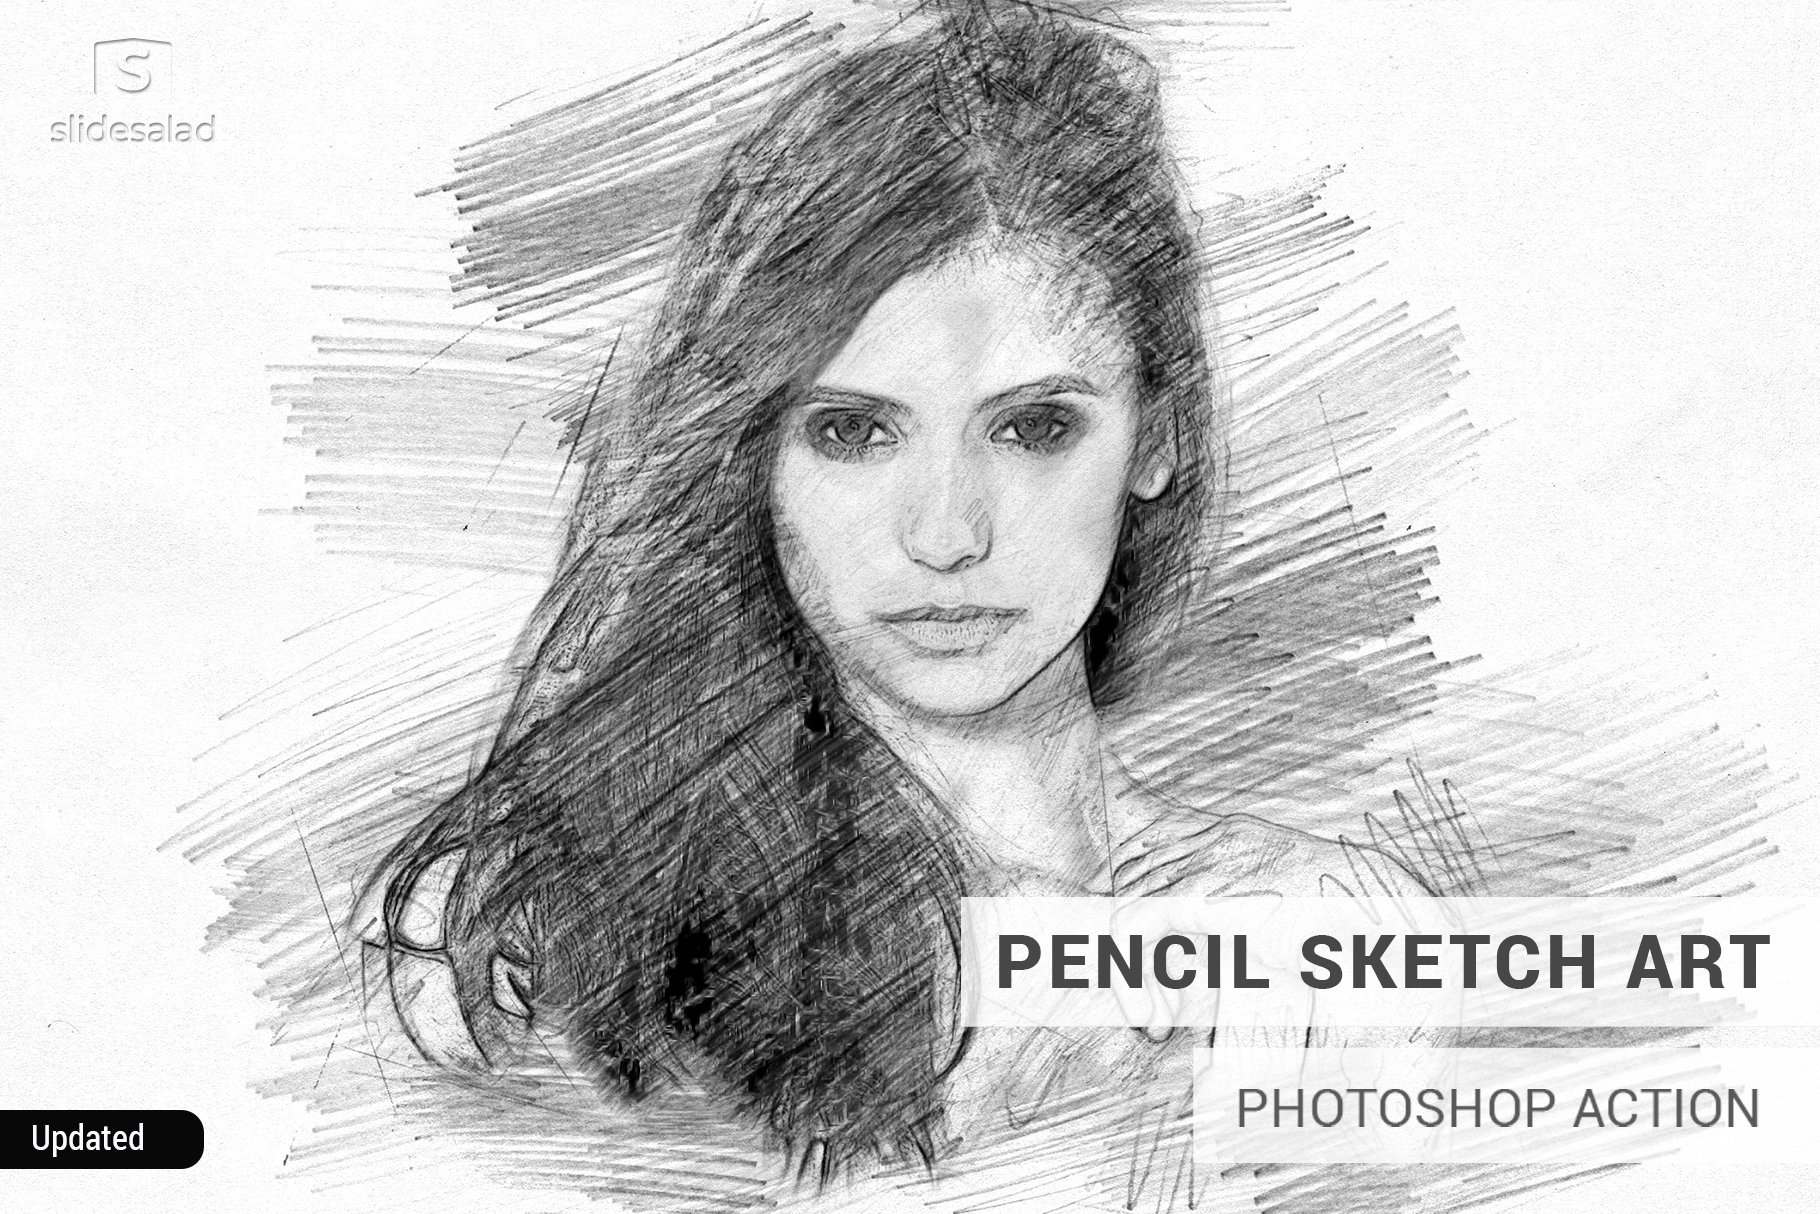 Pencil sketch art photoshop action actions creative market